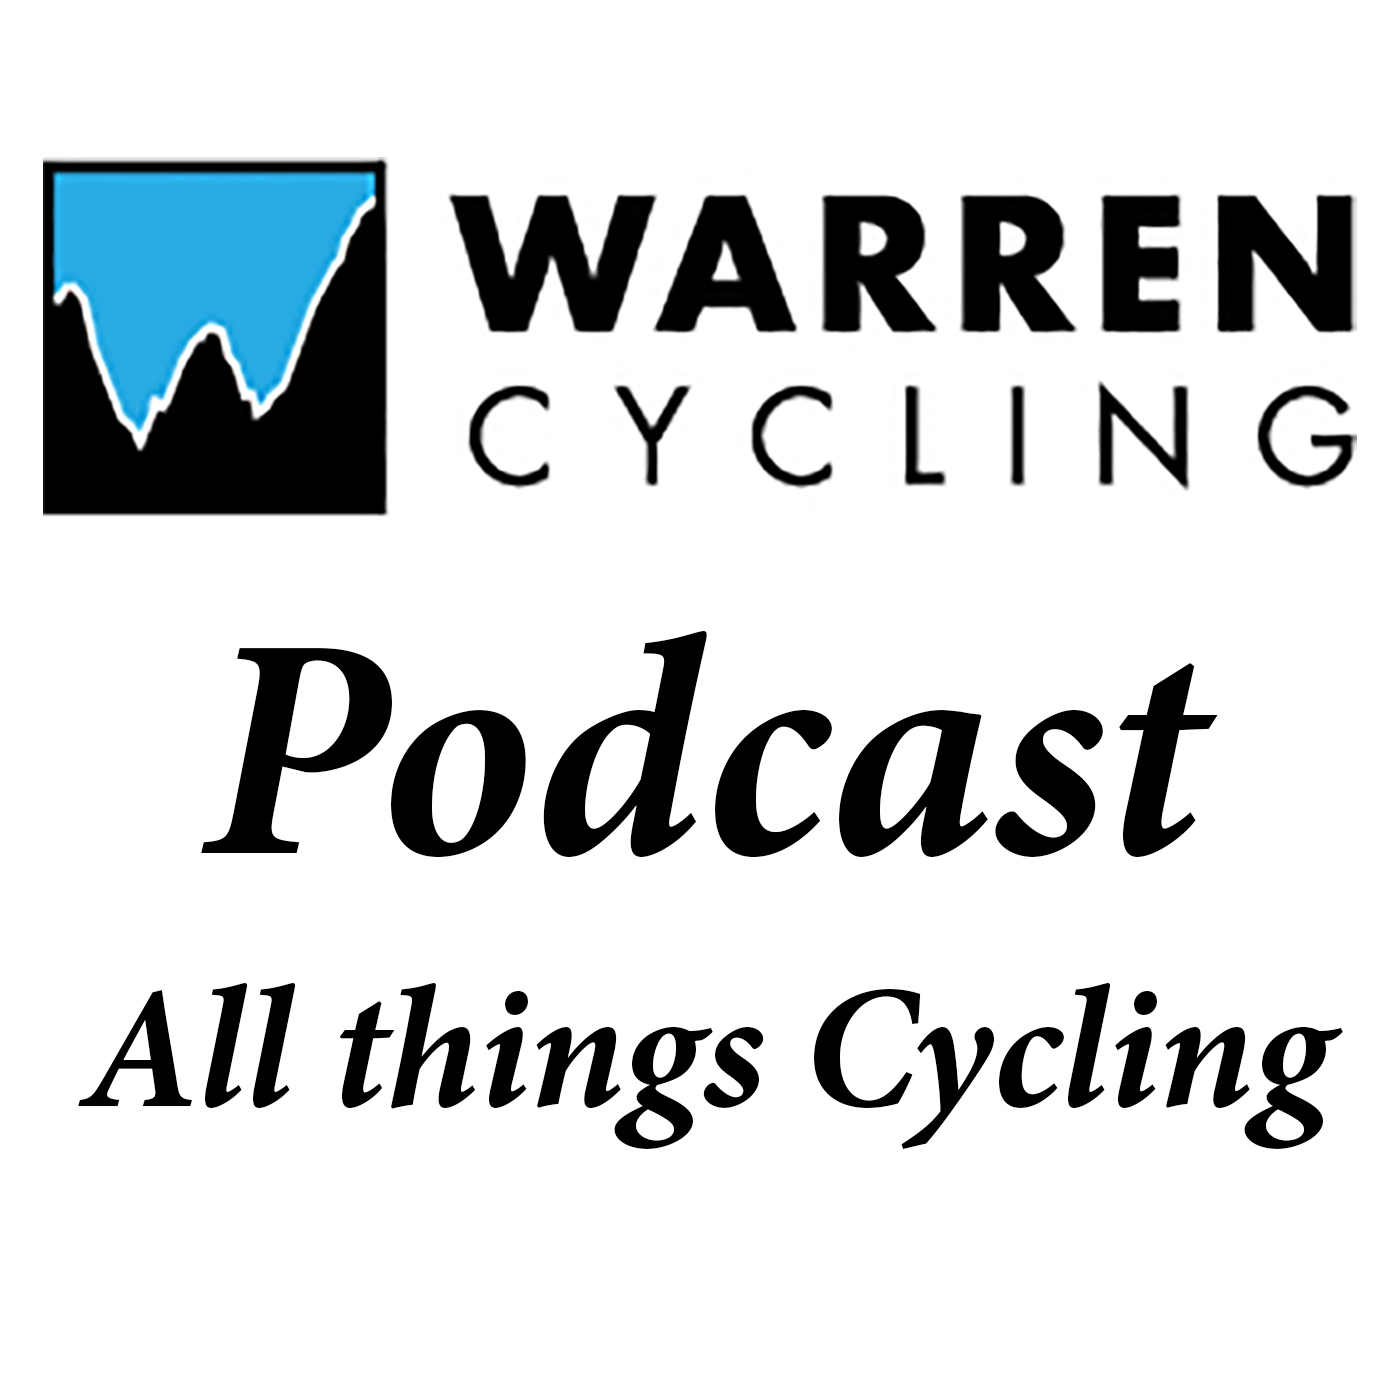 Warren Cycling Podcast Episode 227: Giro Finish and the Vuelta  show art